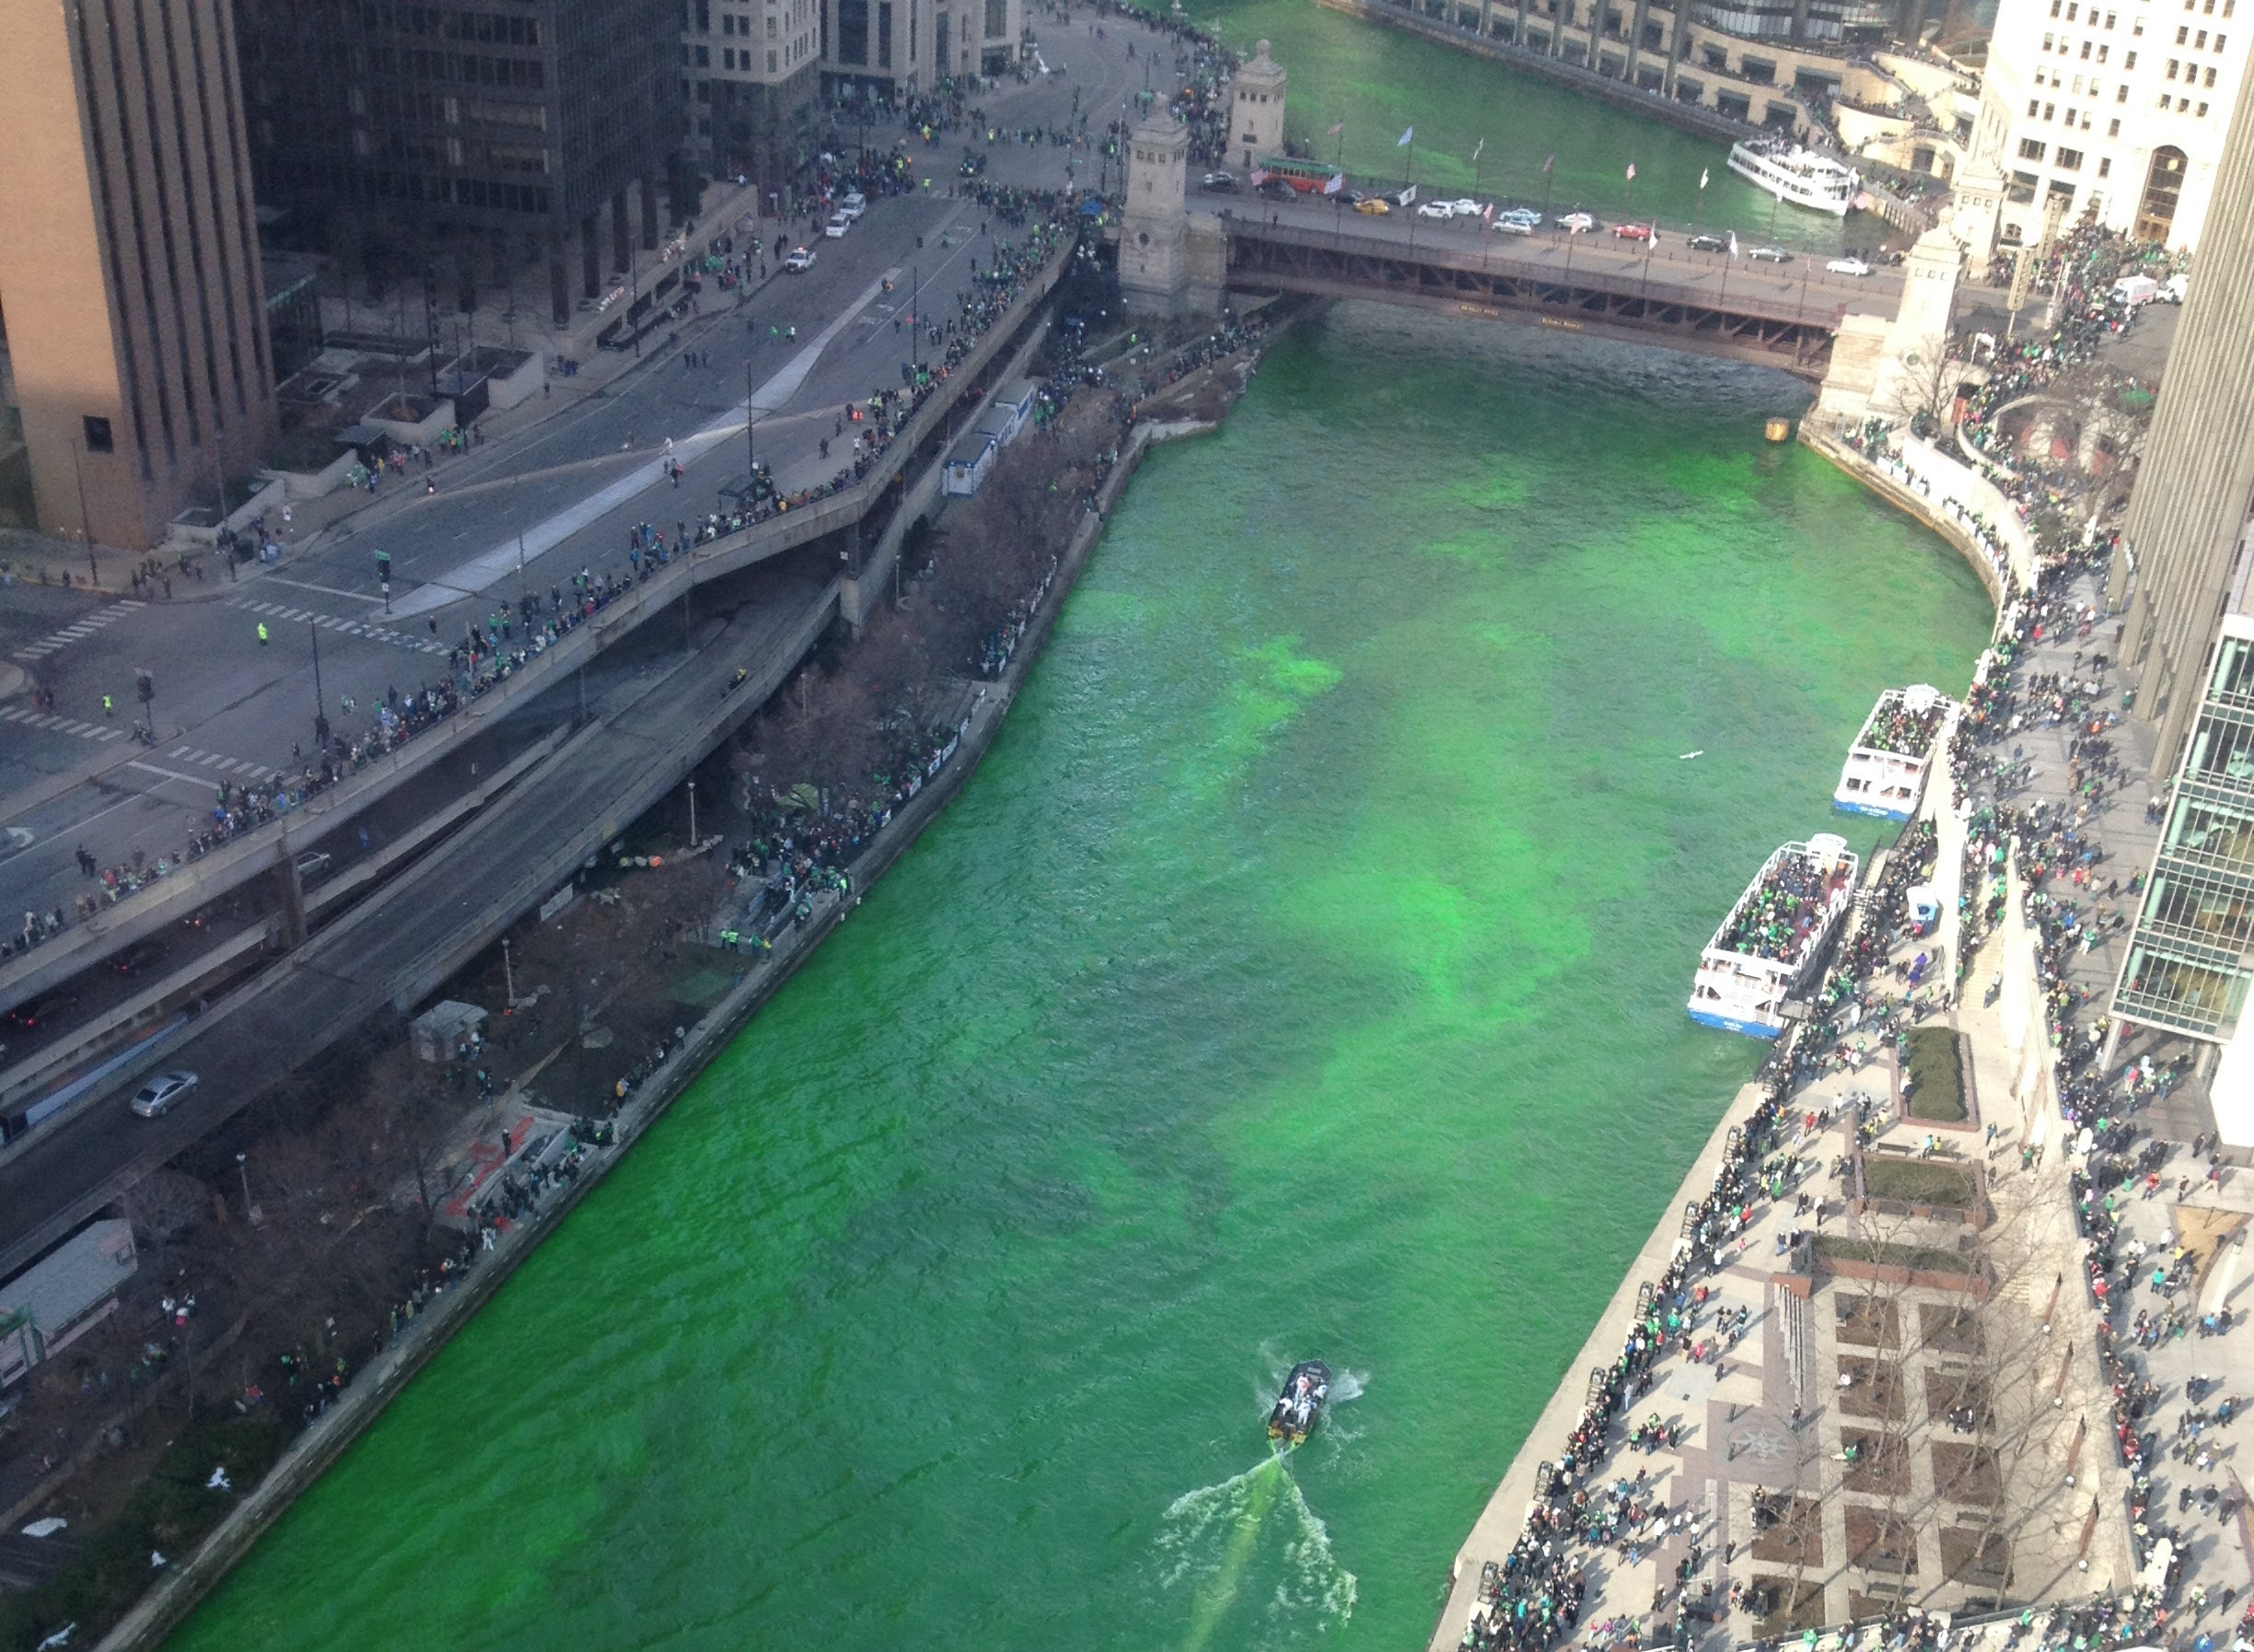 Aerial view of the Chicago River dyed green.